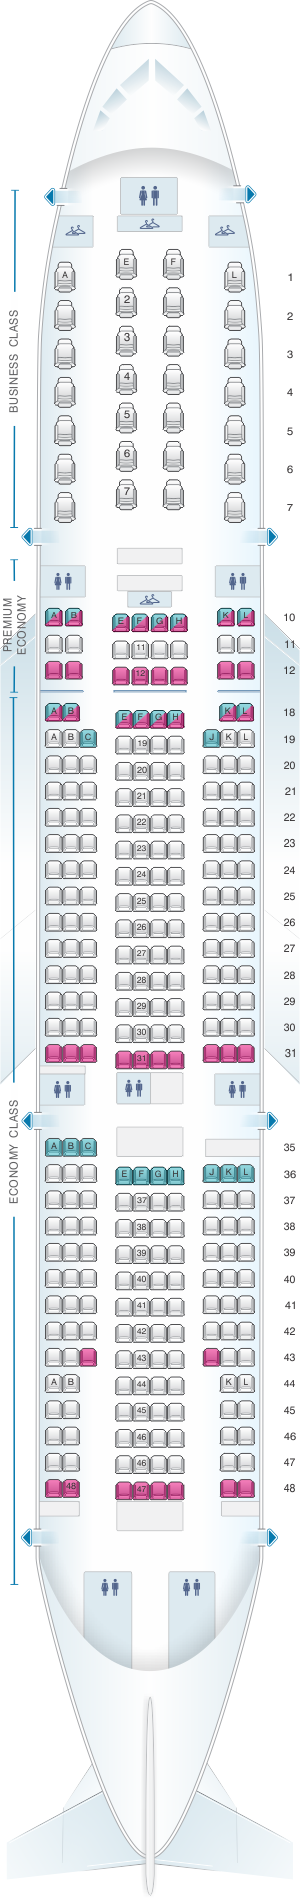 Seat map for Air France Boeing B777 200 International Long-Haul 312PAX